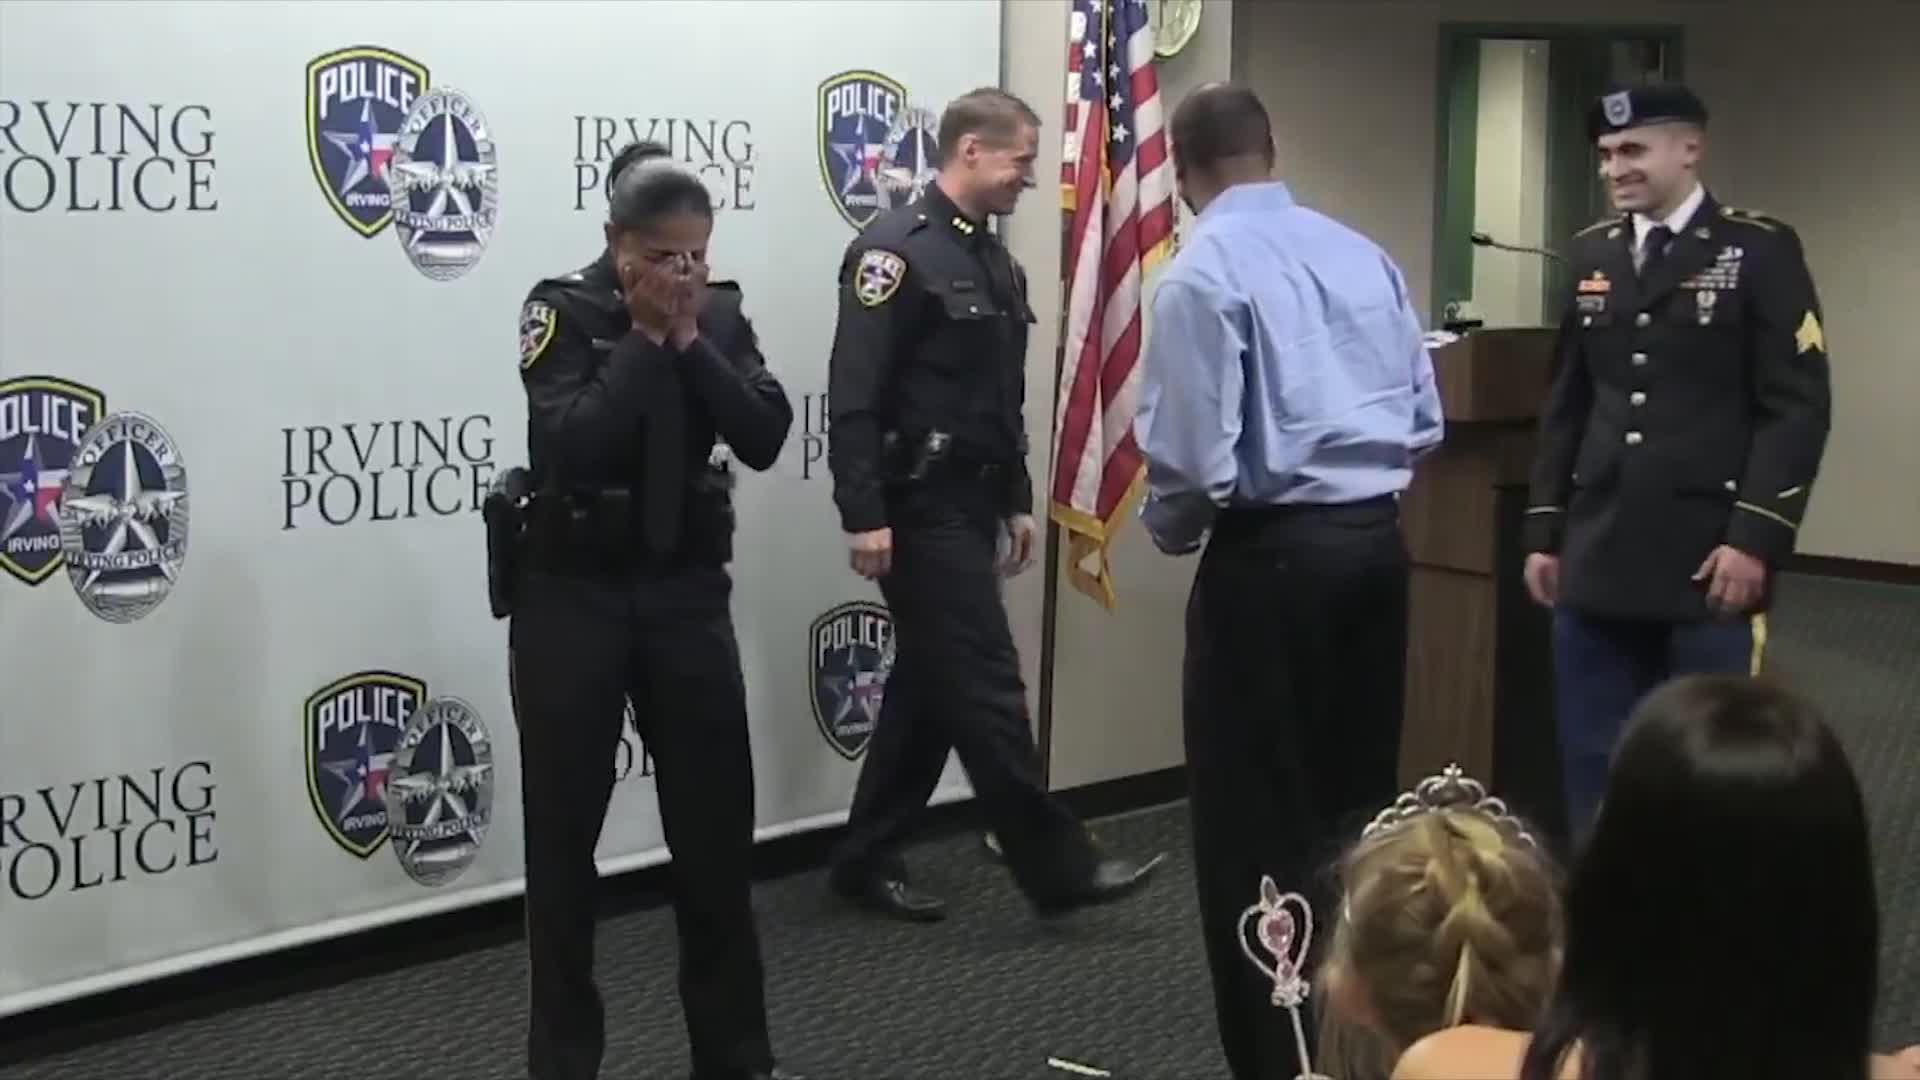 A Soldier son surprised his mom by showing up as she was swearing in as a police officer.